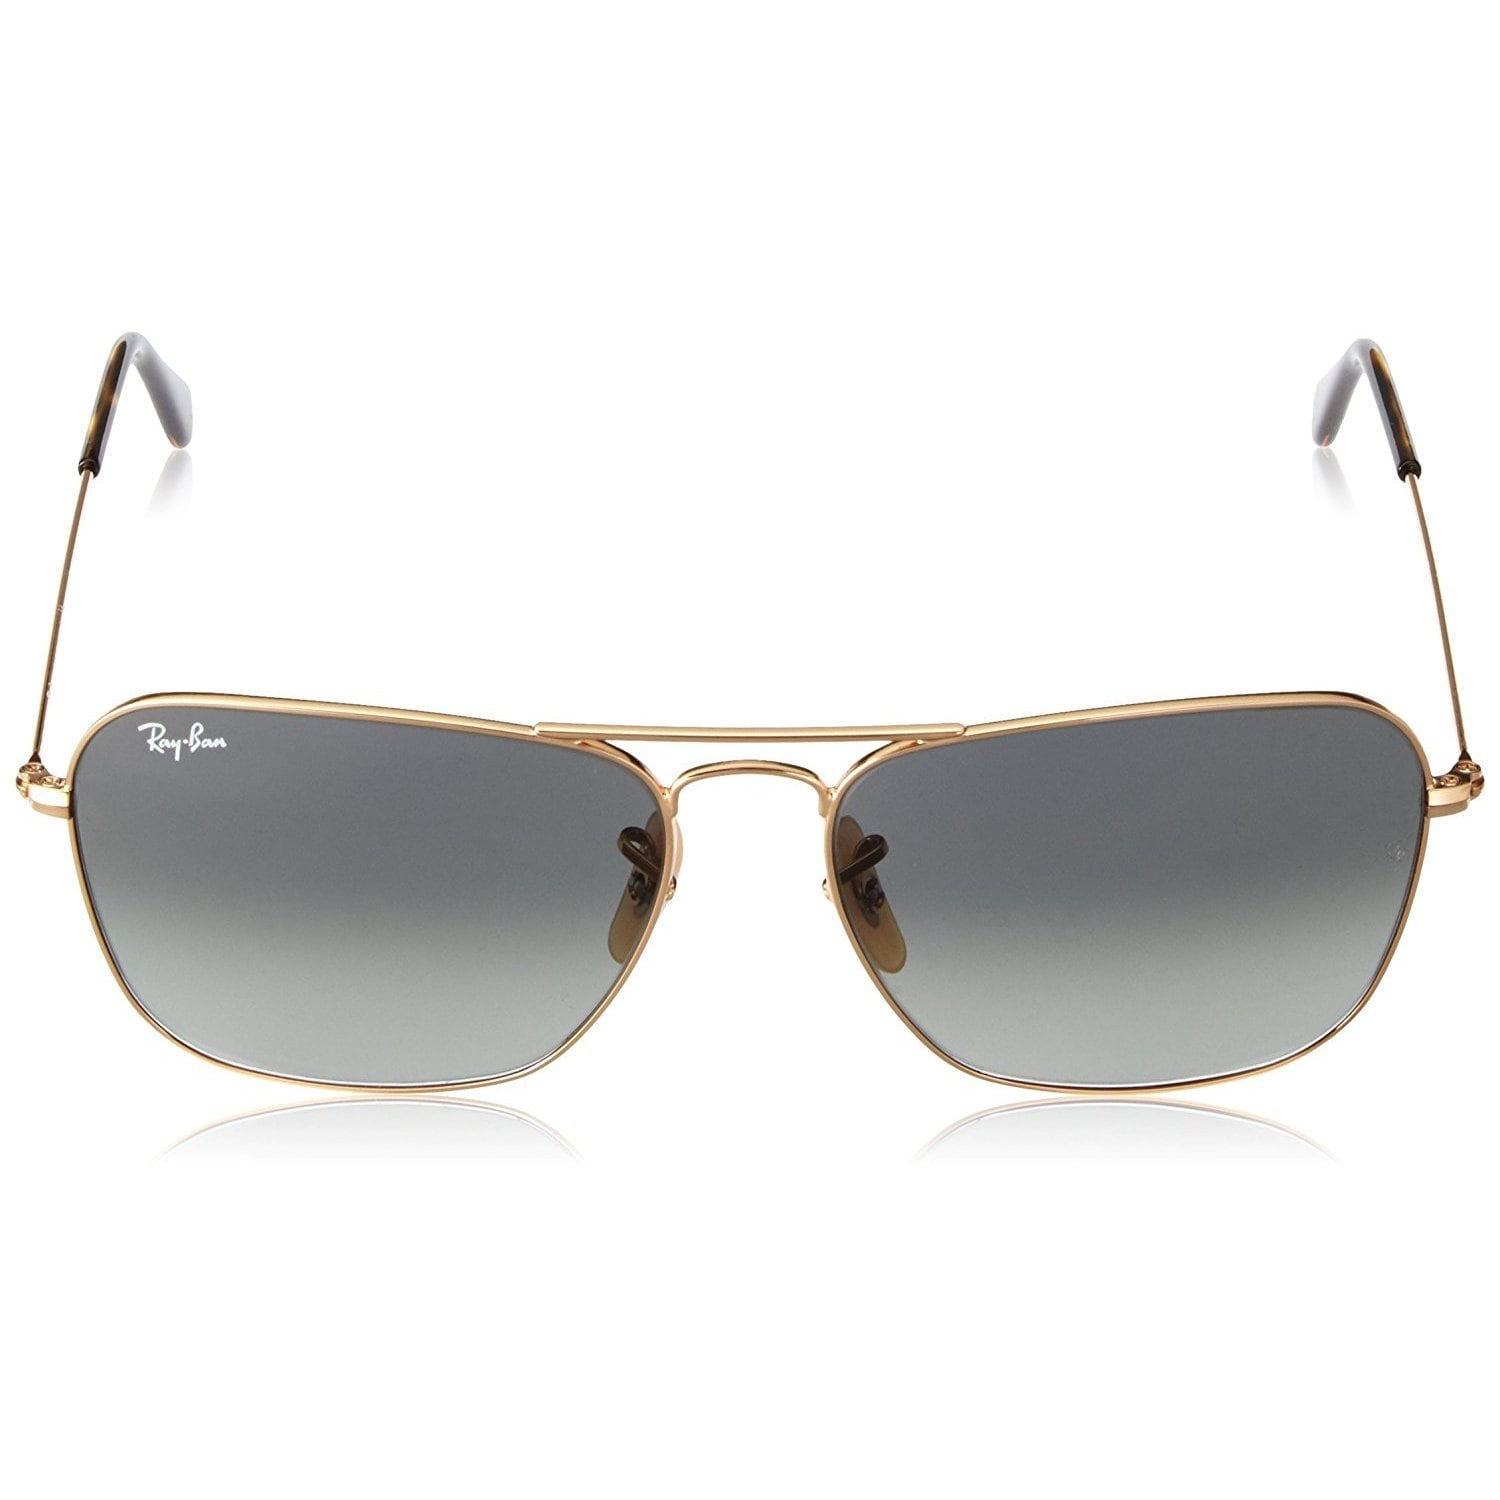 c475877fae Shop Ray-Ban Caravan RB3136 181 71 Unisex Gold Frame Grey Gradient 55mm Lens  Sunglasses - Free Shipping Today - Overstock - 14988856